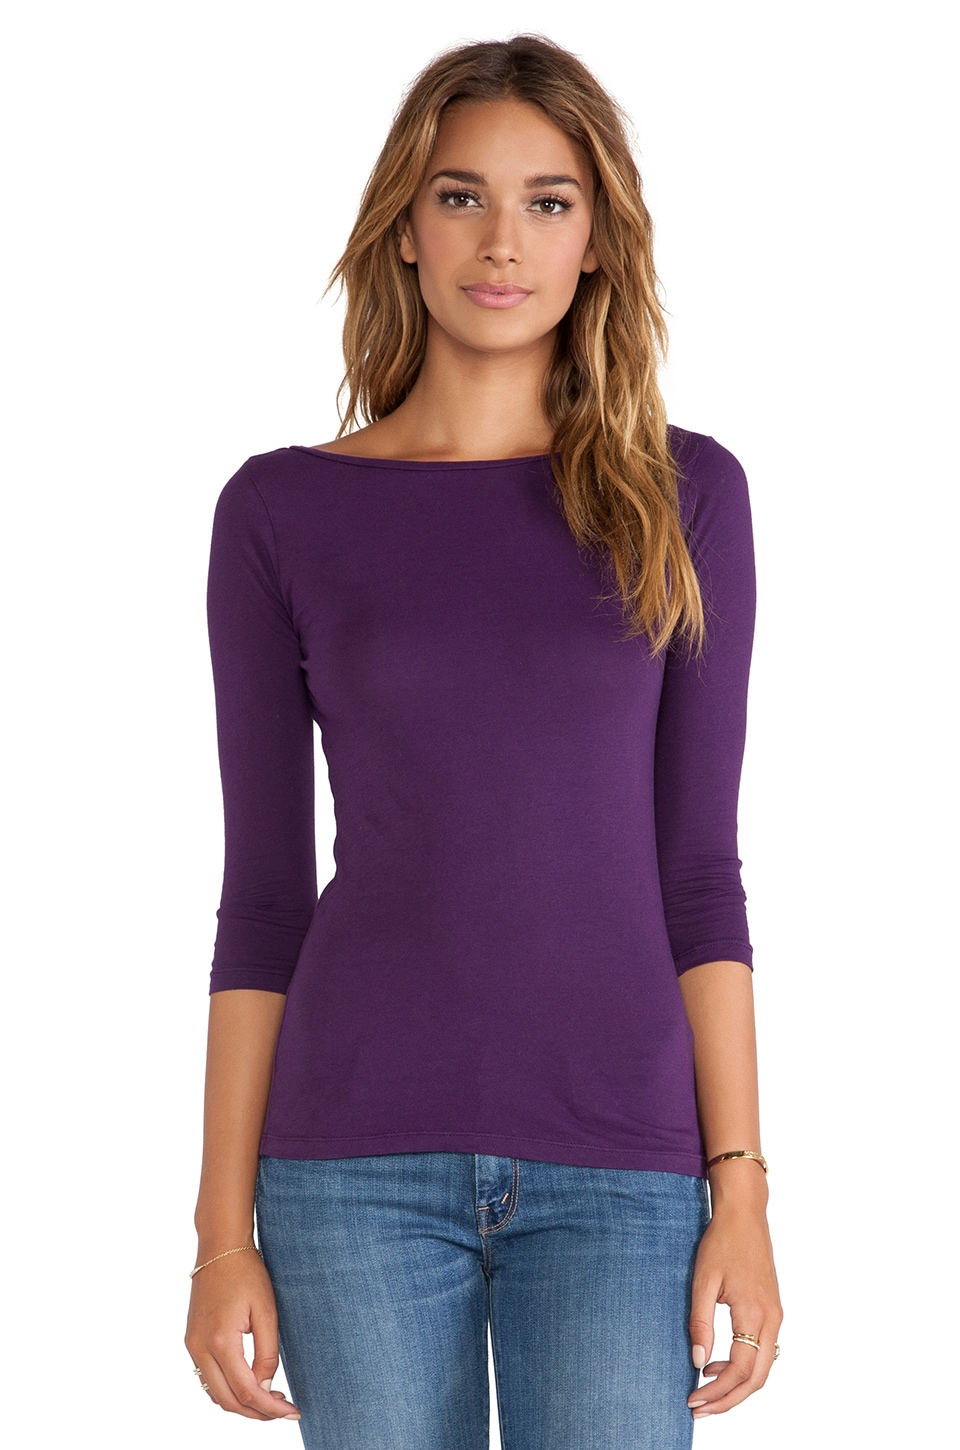 Bobi Light Weight Jersey Long Sleeve Tee in Plu